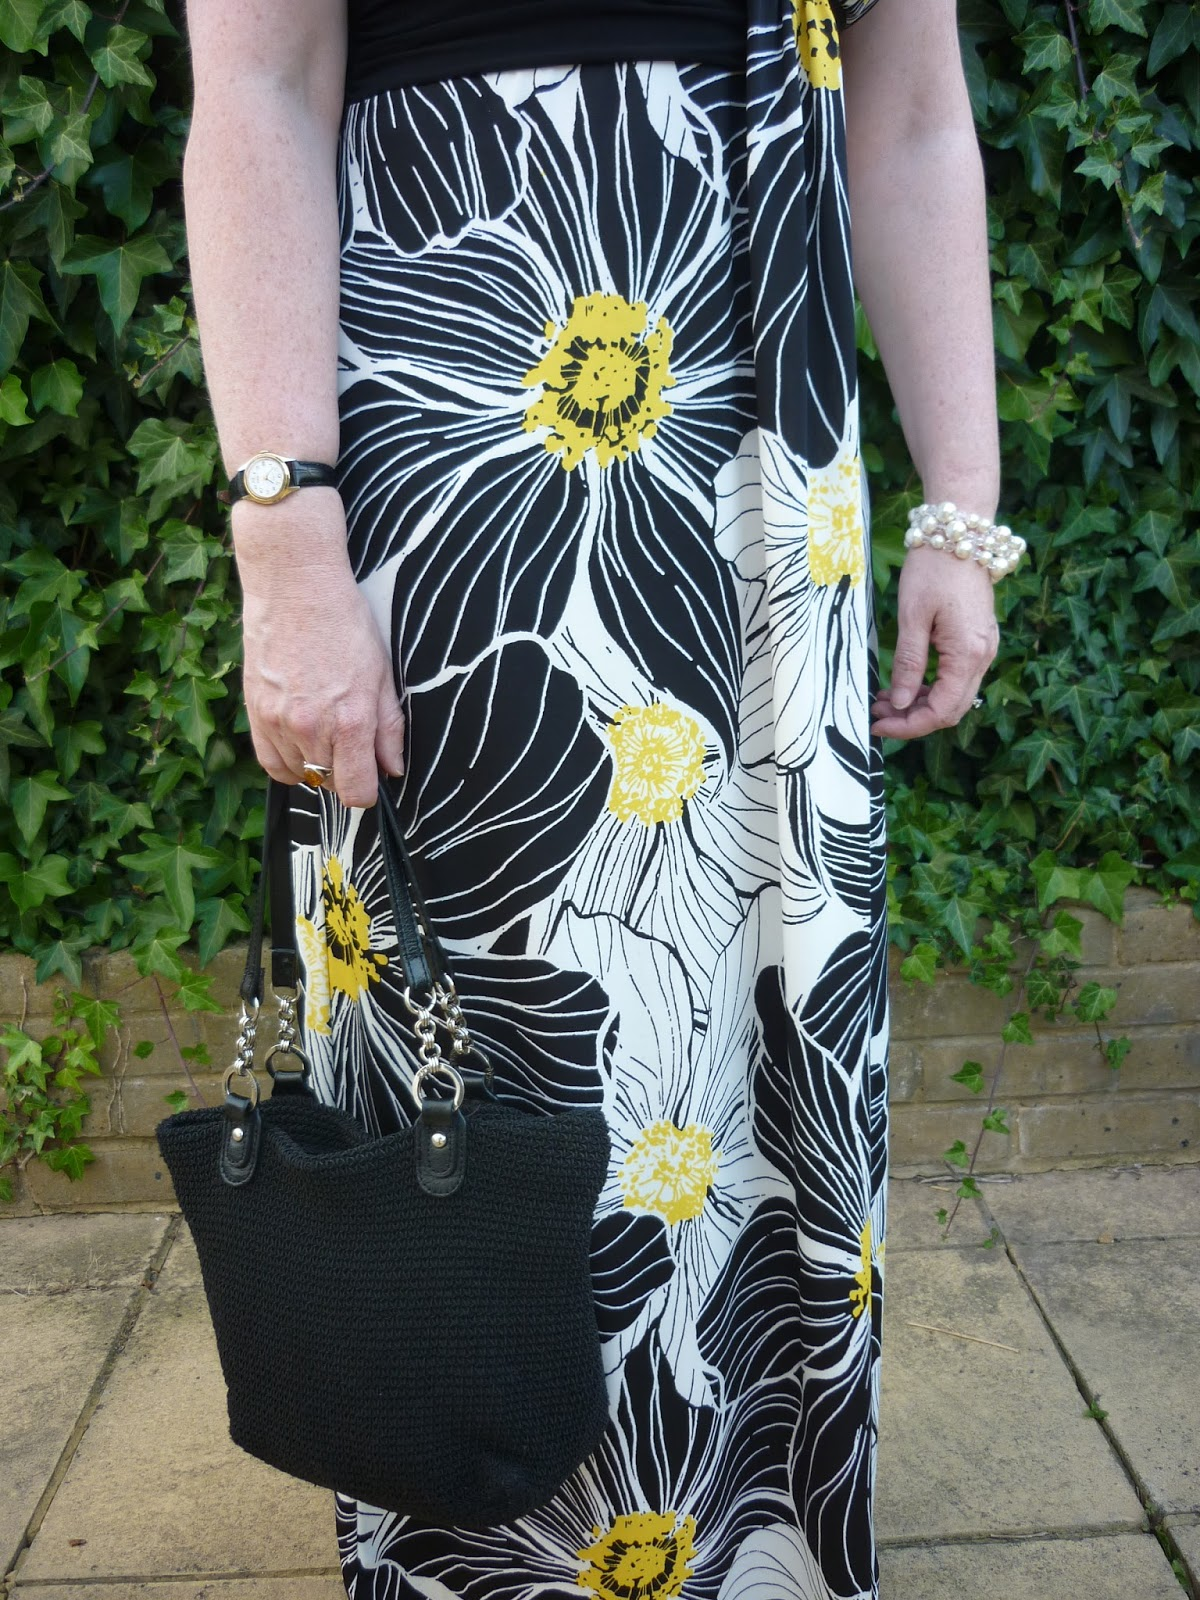 Skirt of Floral Maxi Dress